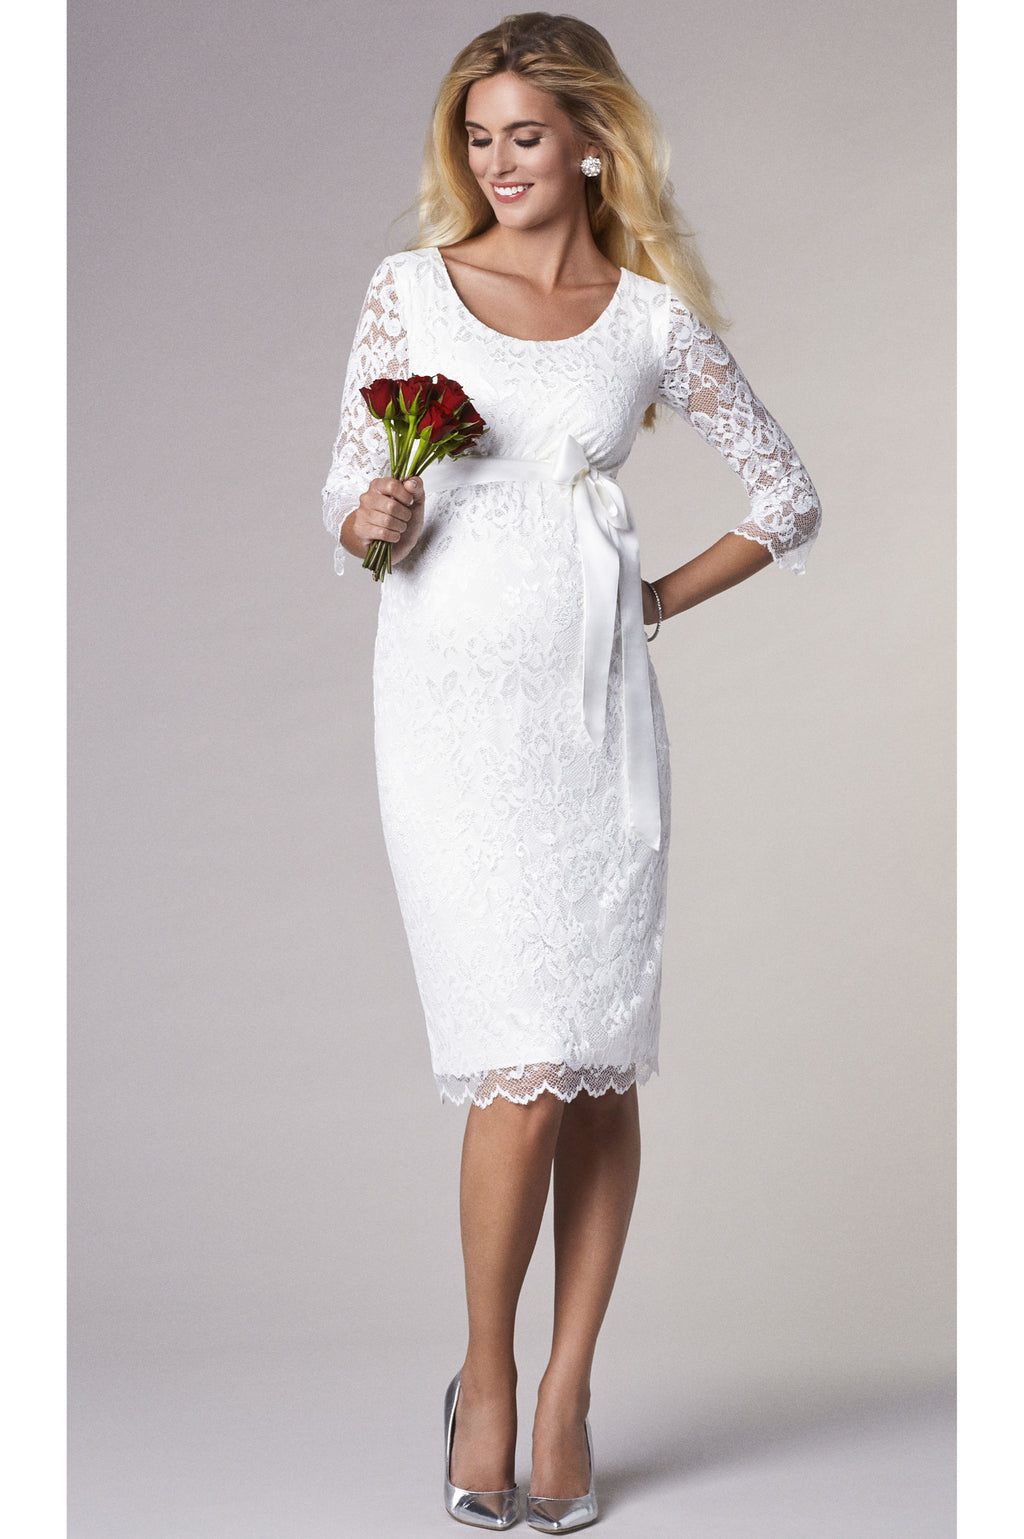 Tiffany Rose Katie Maternity Wedding Dress - Seven Women Maternity